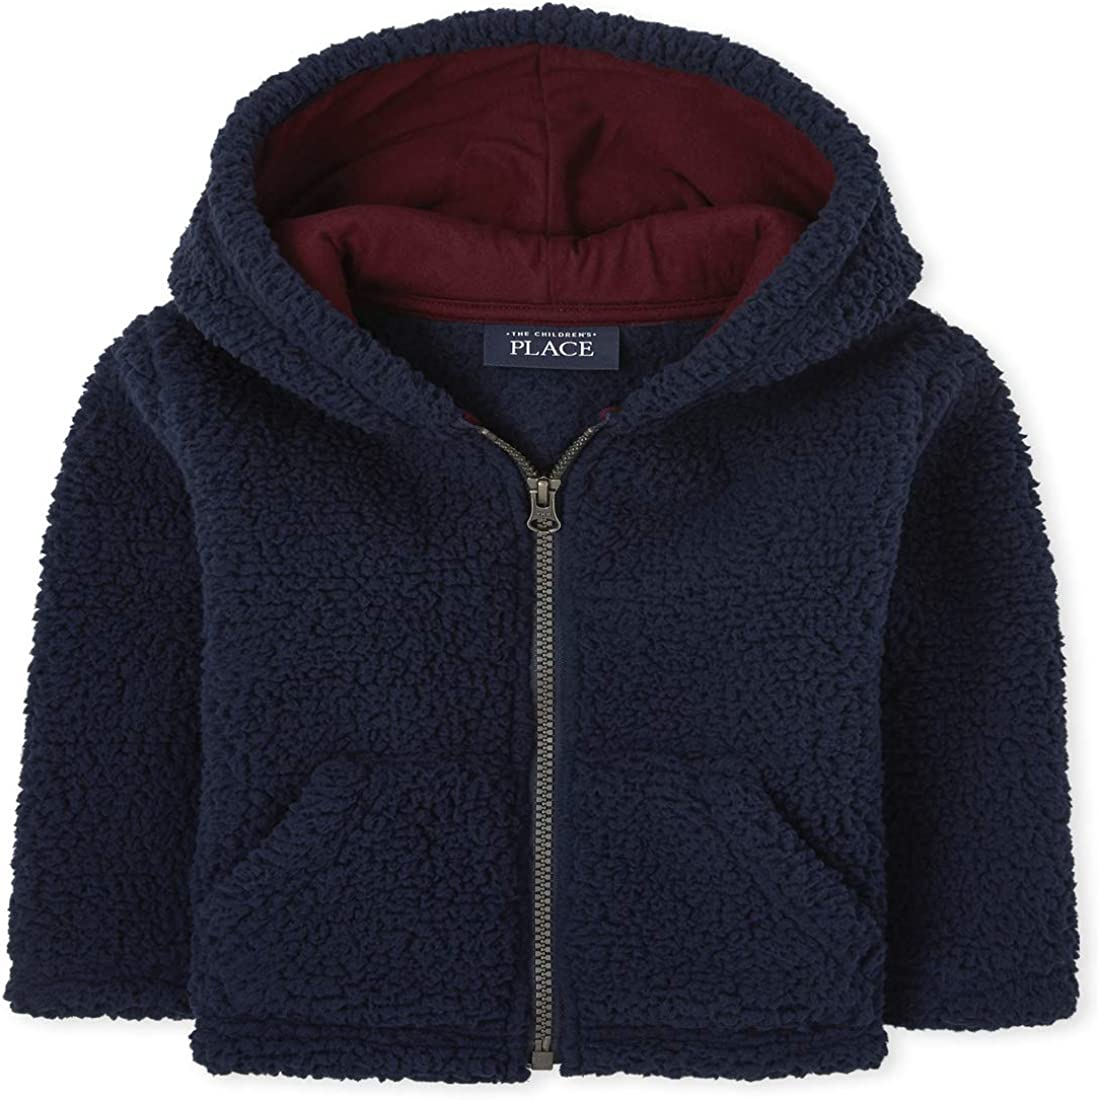 The Children's Place Boys' Toddler Sherpa Cozy Zip Up Hoodie